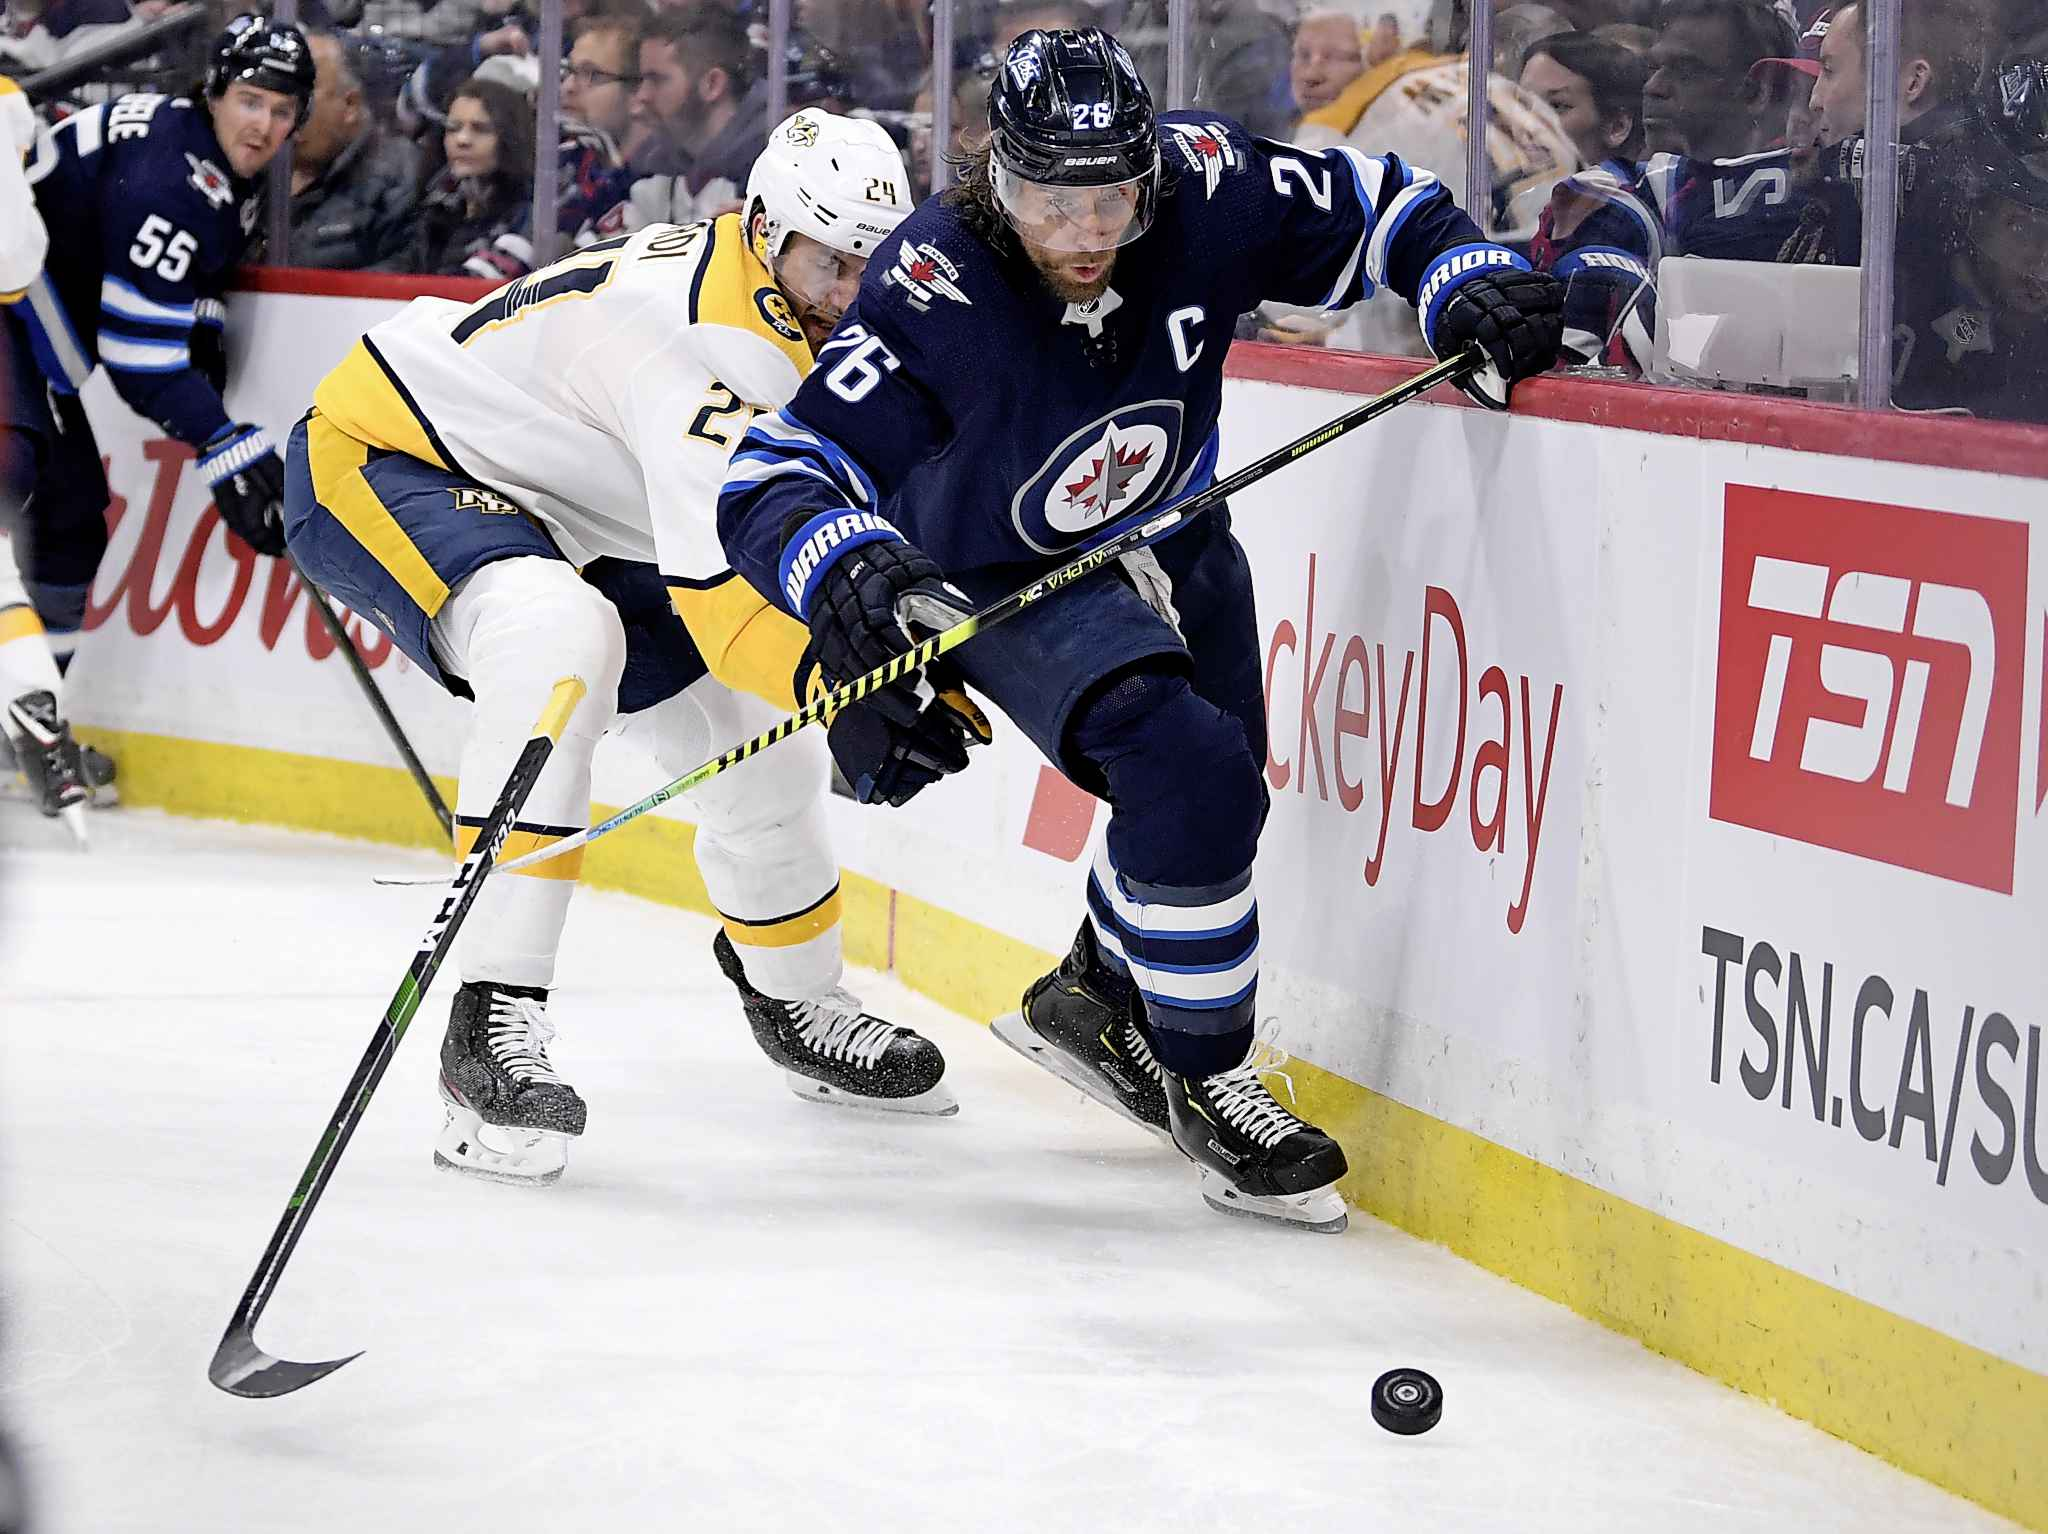 Winnipeg Jets' Blake Wheeler and Nashville Predators' Jarred Tinordi skate after a loose puck during the second period.